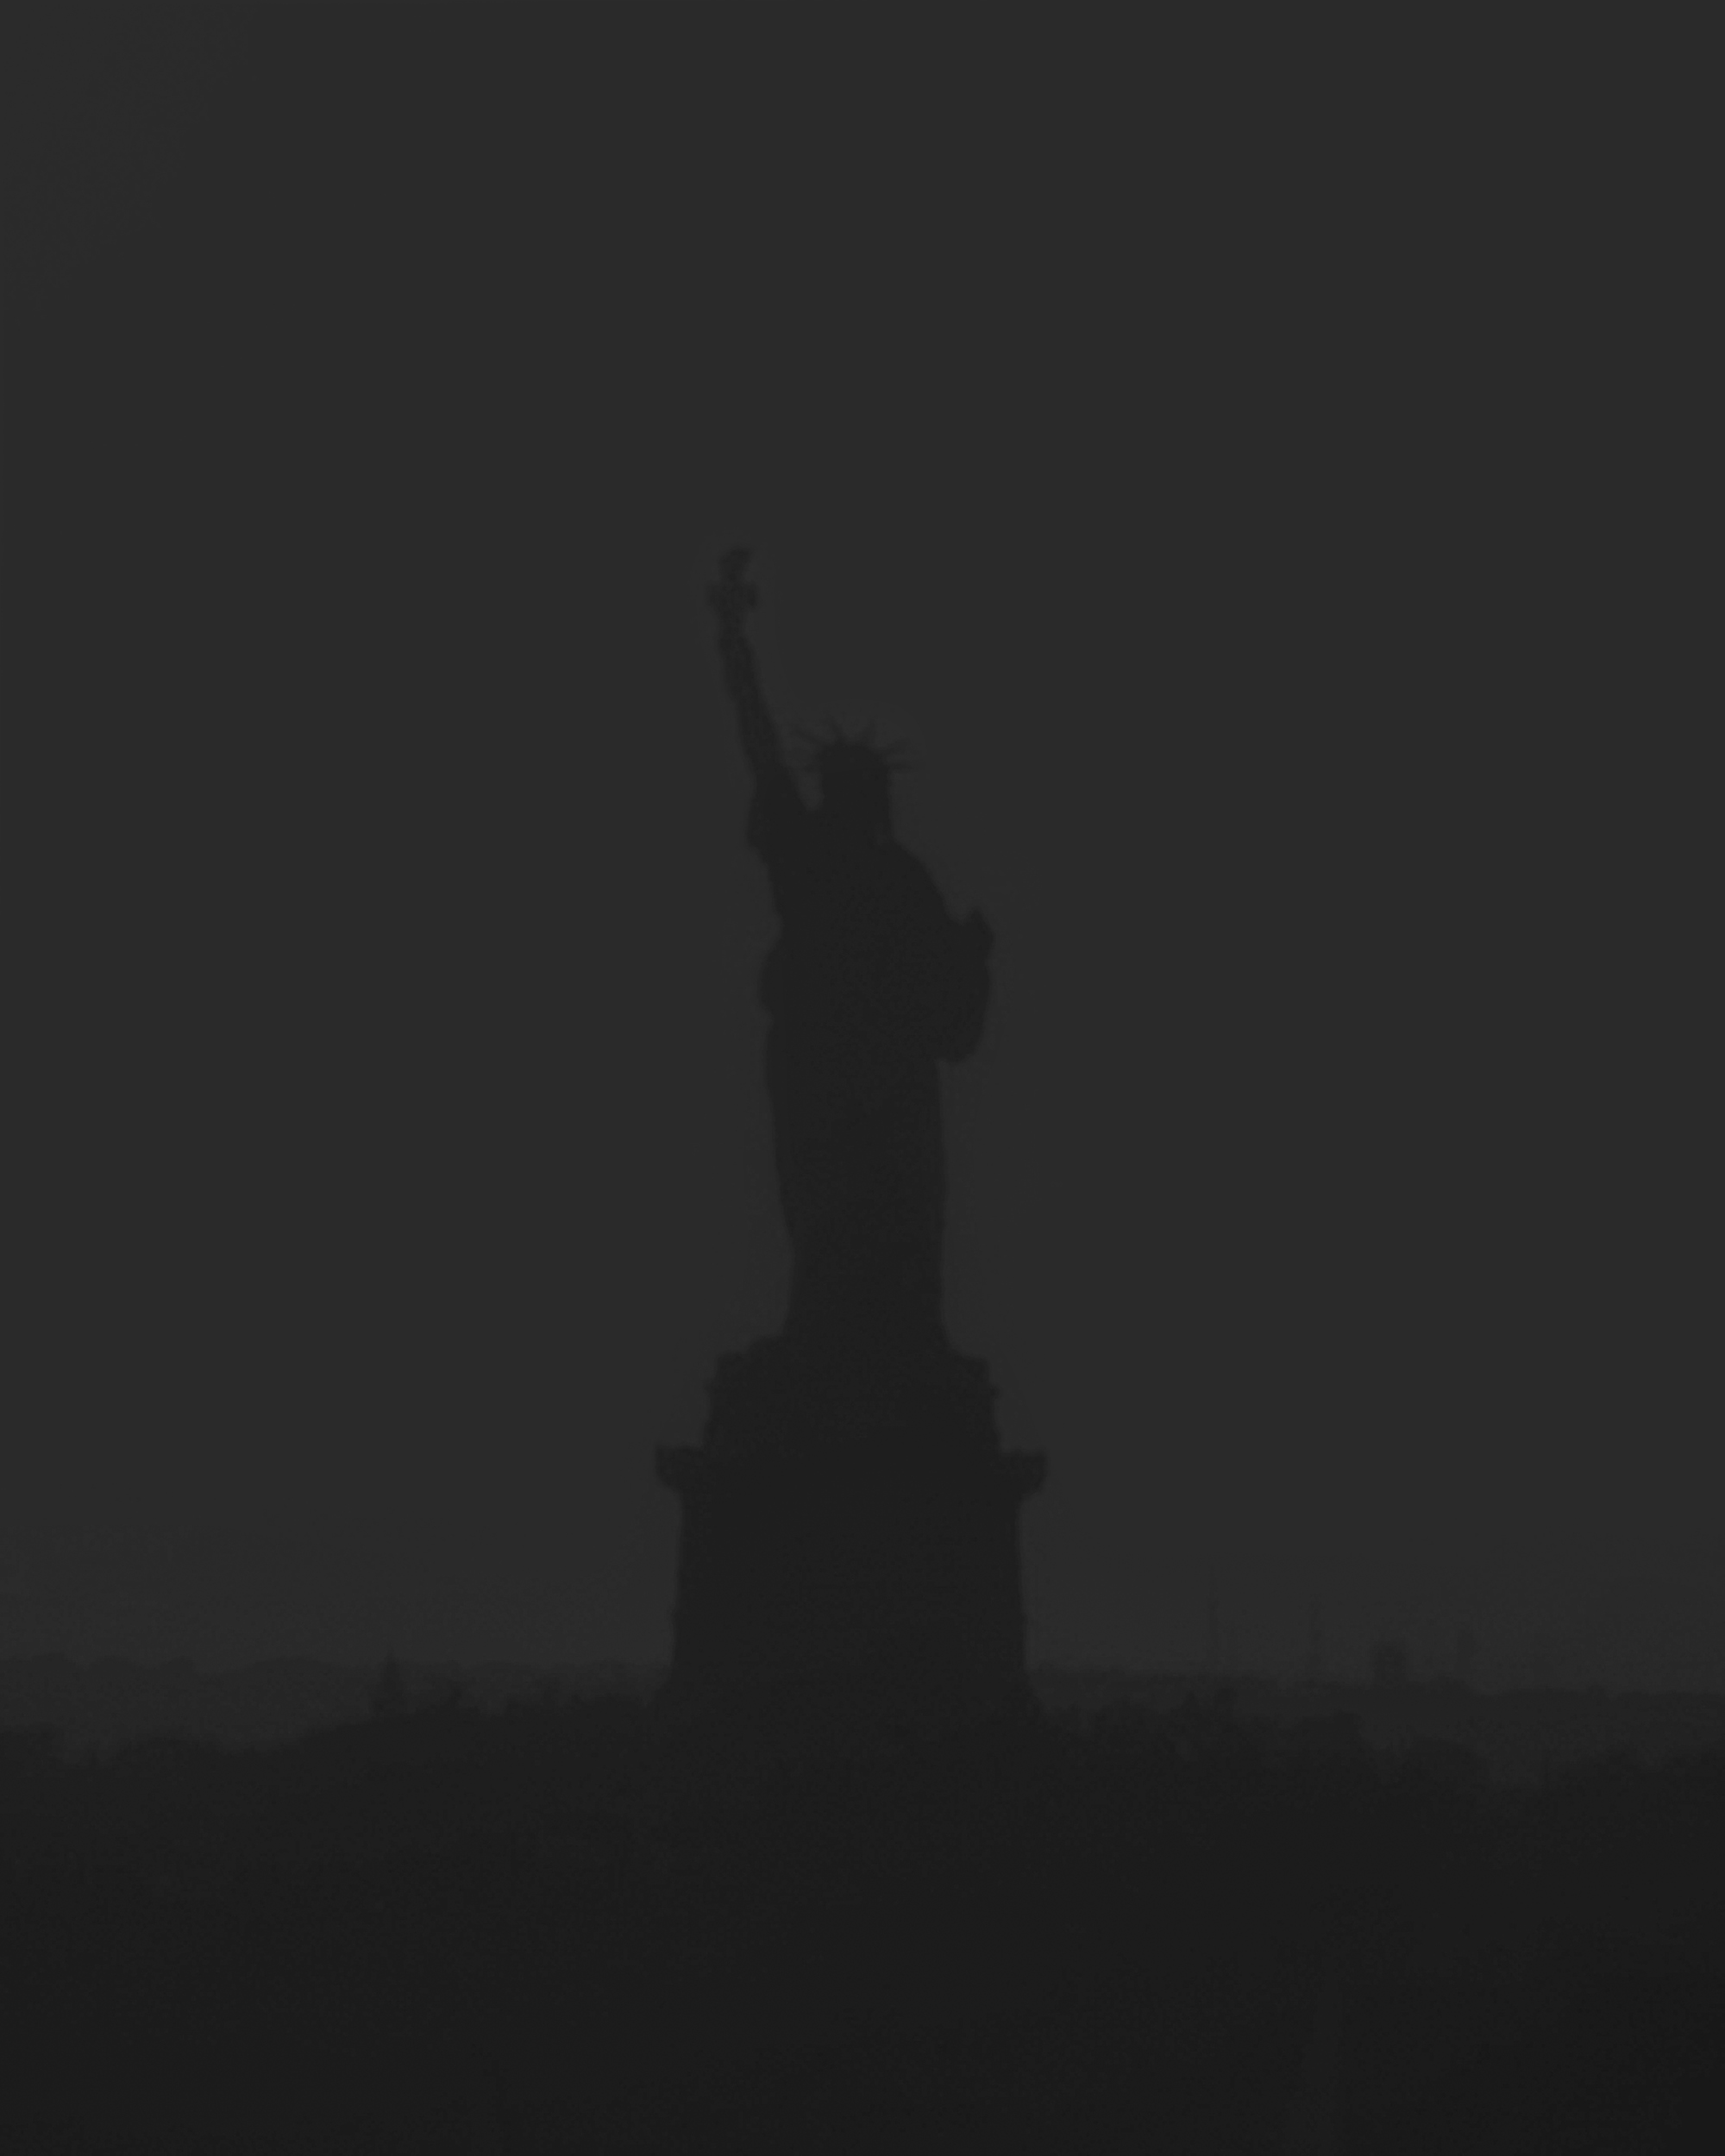 The Statue of Liberty (From a Surveillance Camera)